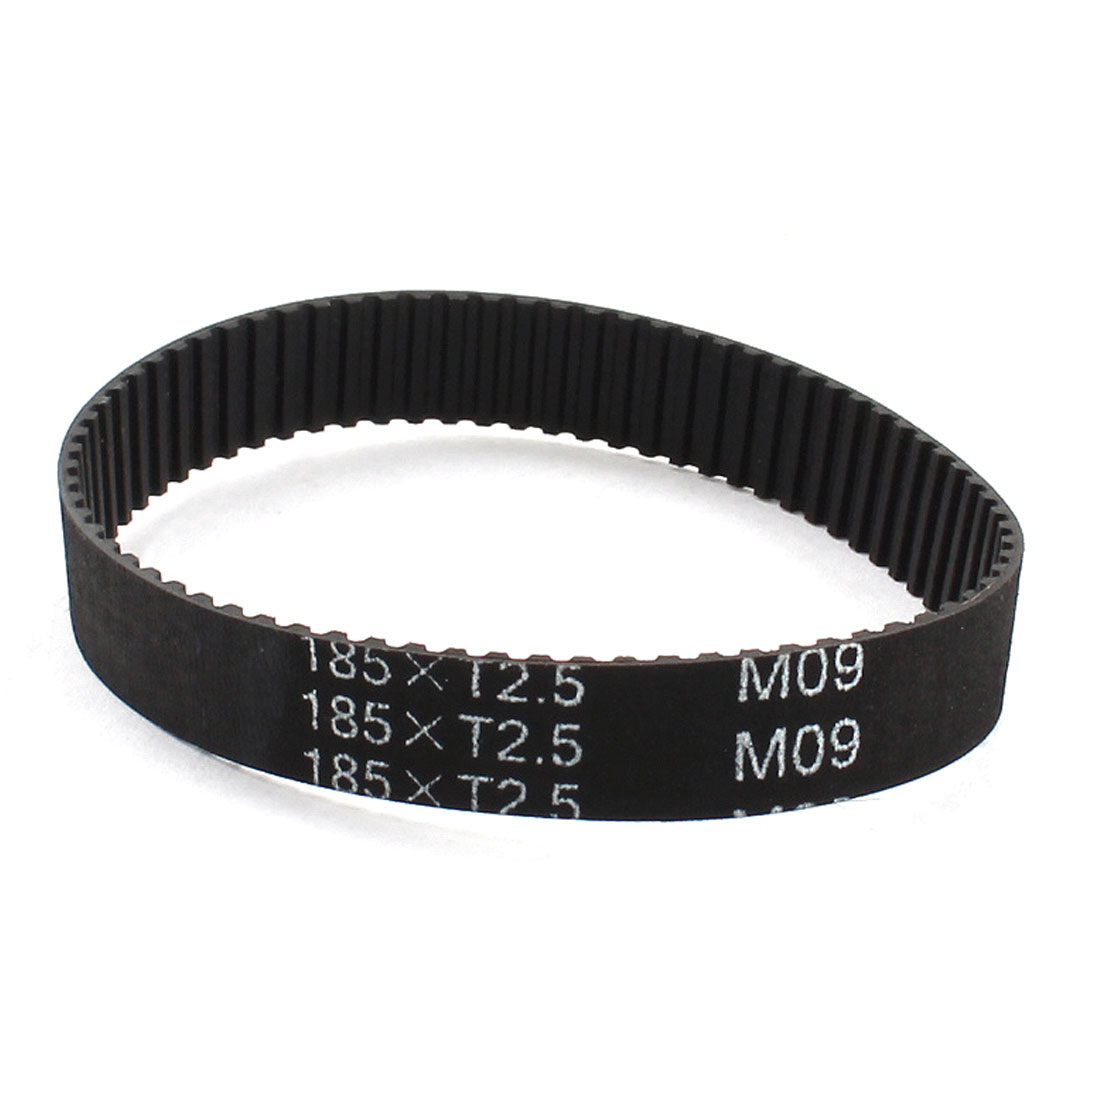 "T2.5x185 74-Tooth 10mm Width Black Industrial Machine Groove Synchronous Timing Belt 7.3"" for 3D Printer"